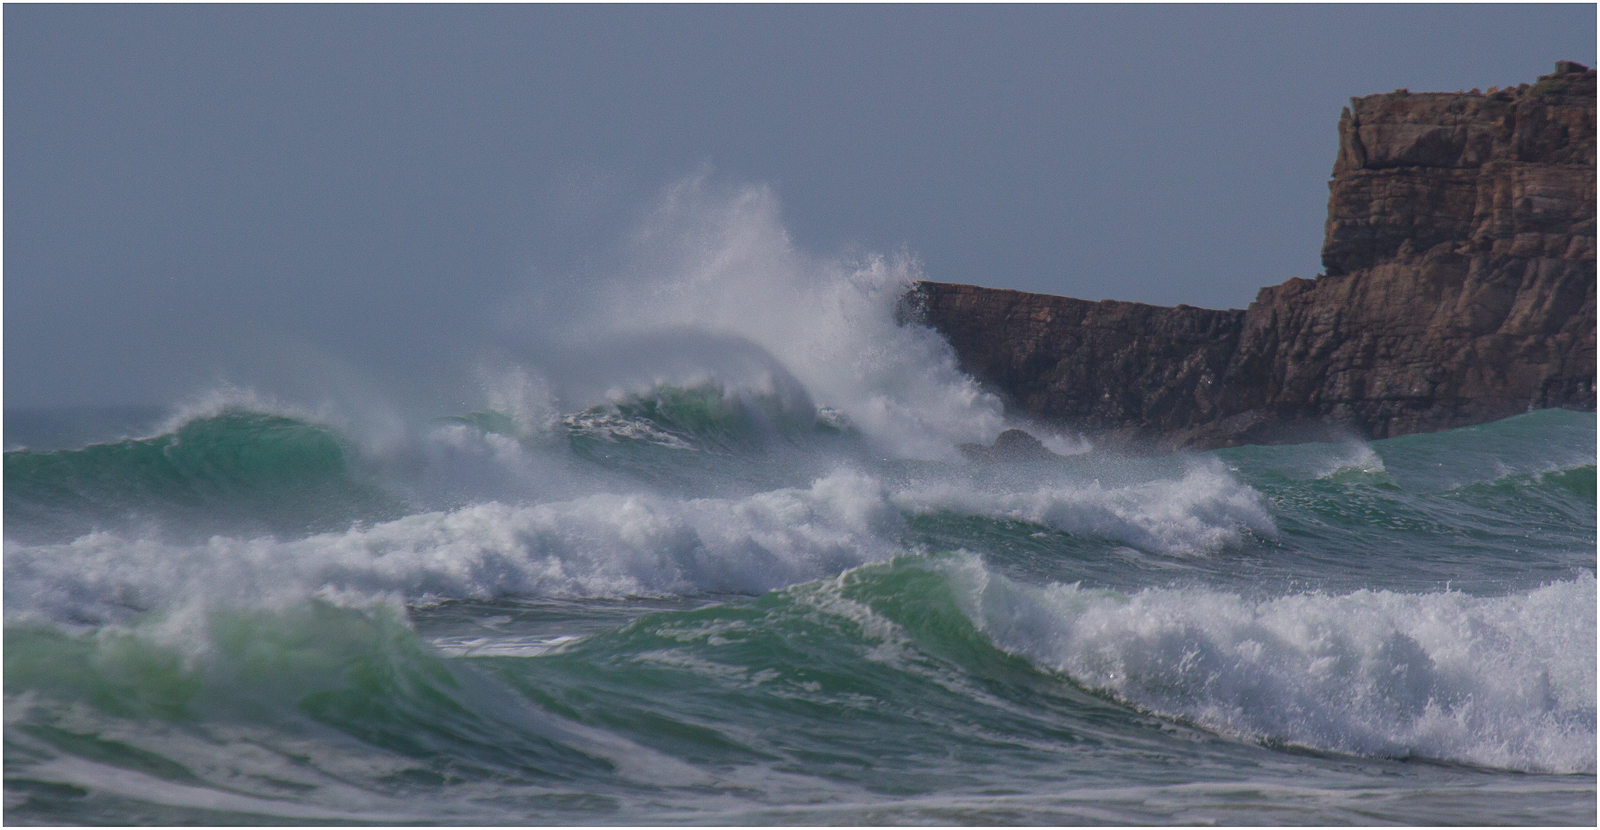 Choppy seas are captured on film by an amateur photographer whilst on holiday at Gwelmor self-catering holiday cottage in Widemouth Bay, North Cornwall